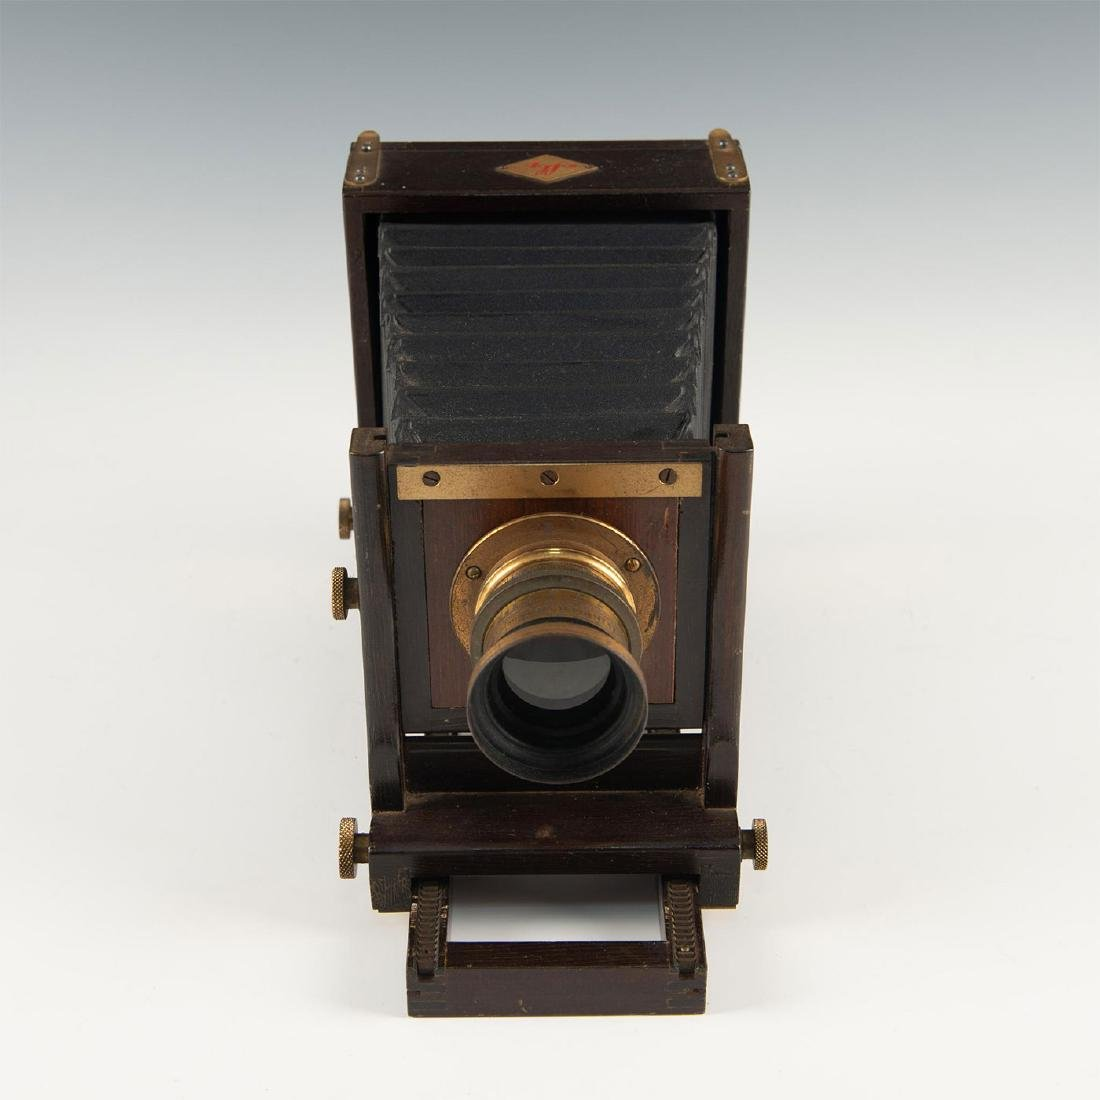 AGFA ANSCO WOODEN CAMERA, BACK ADAPTER AND GROUND GLASS